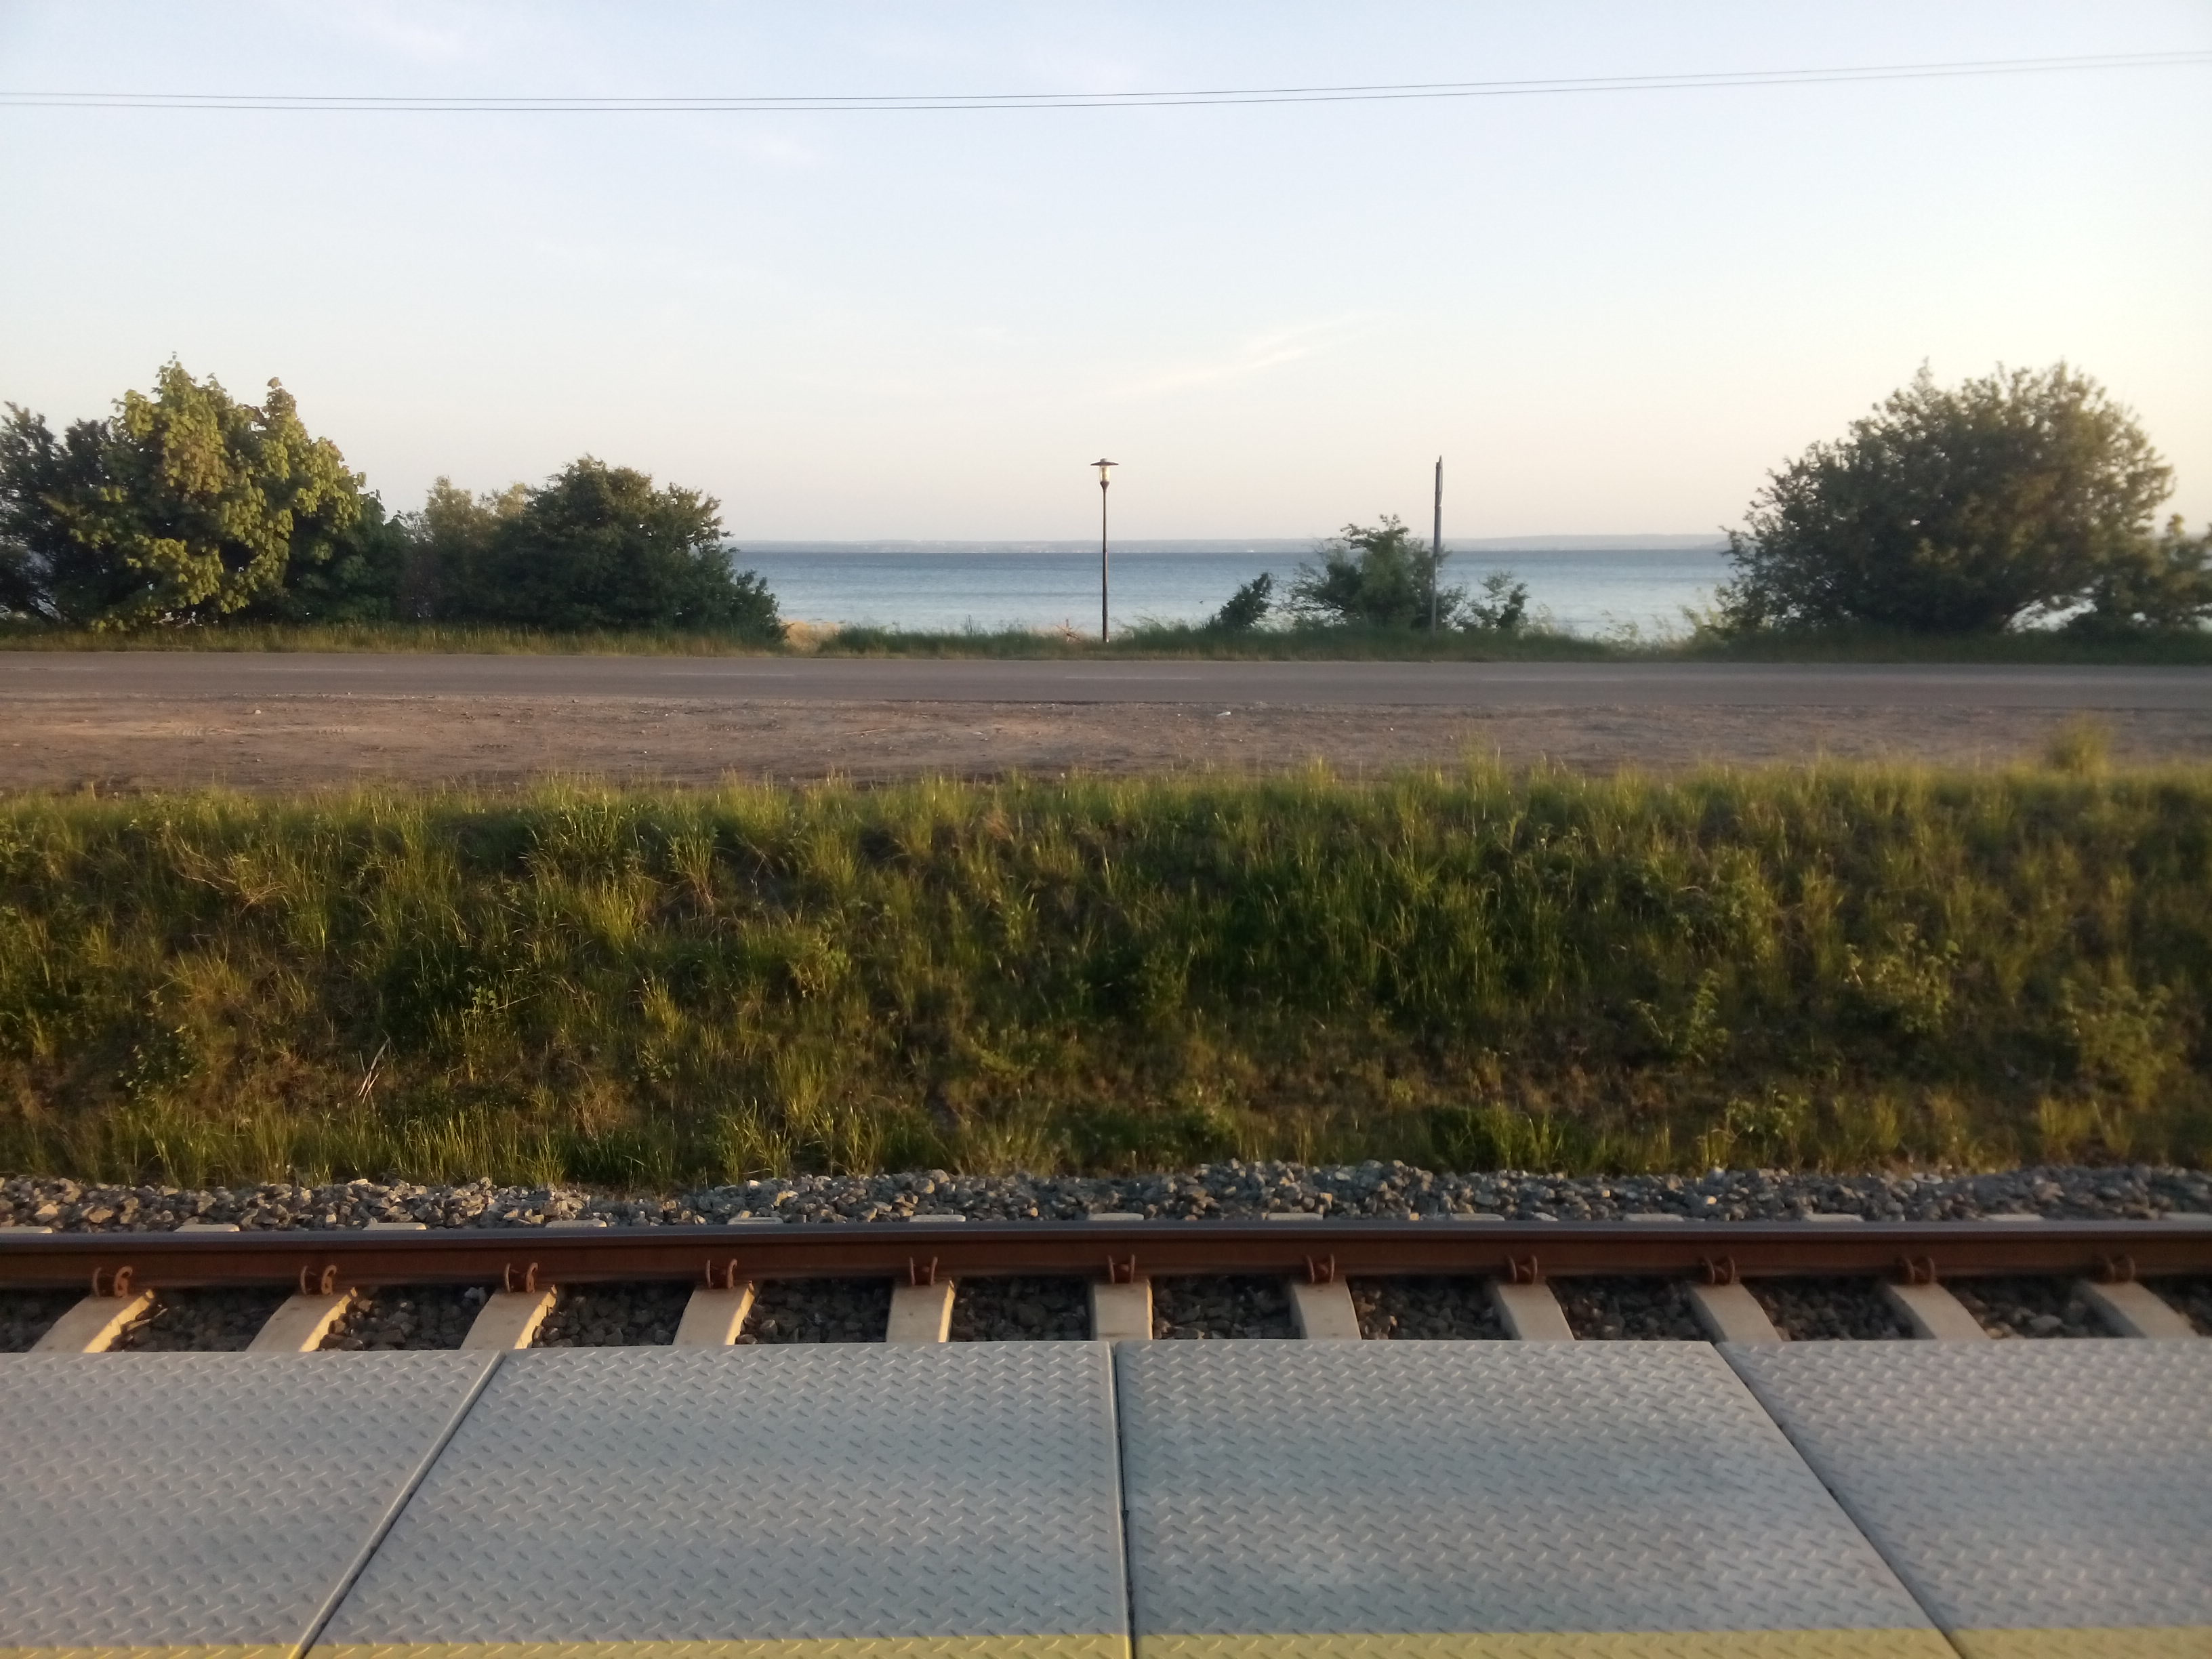 Sea on the horizon with traintracks in the foreground